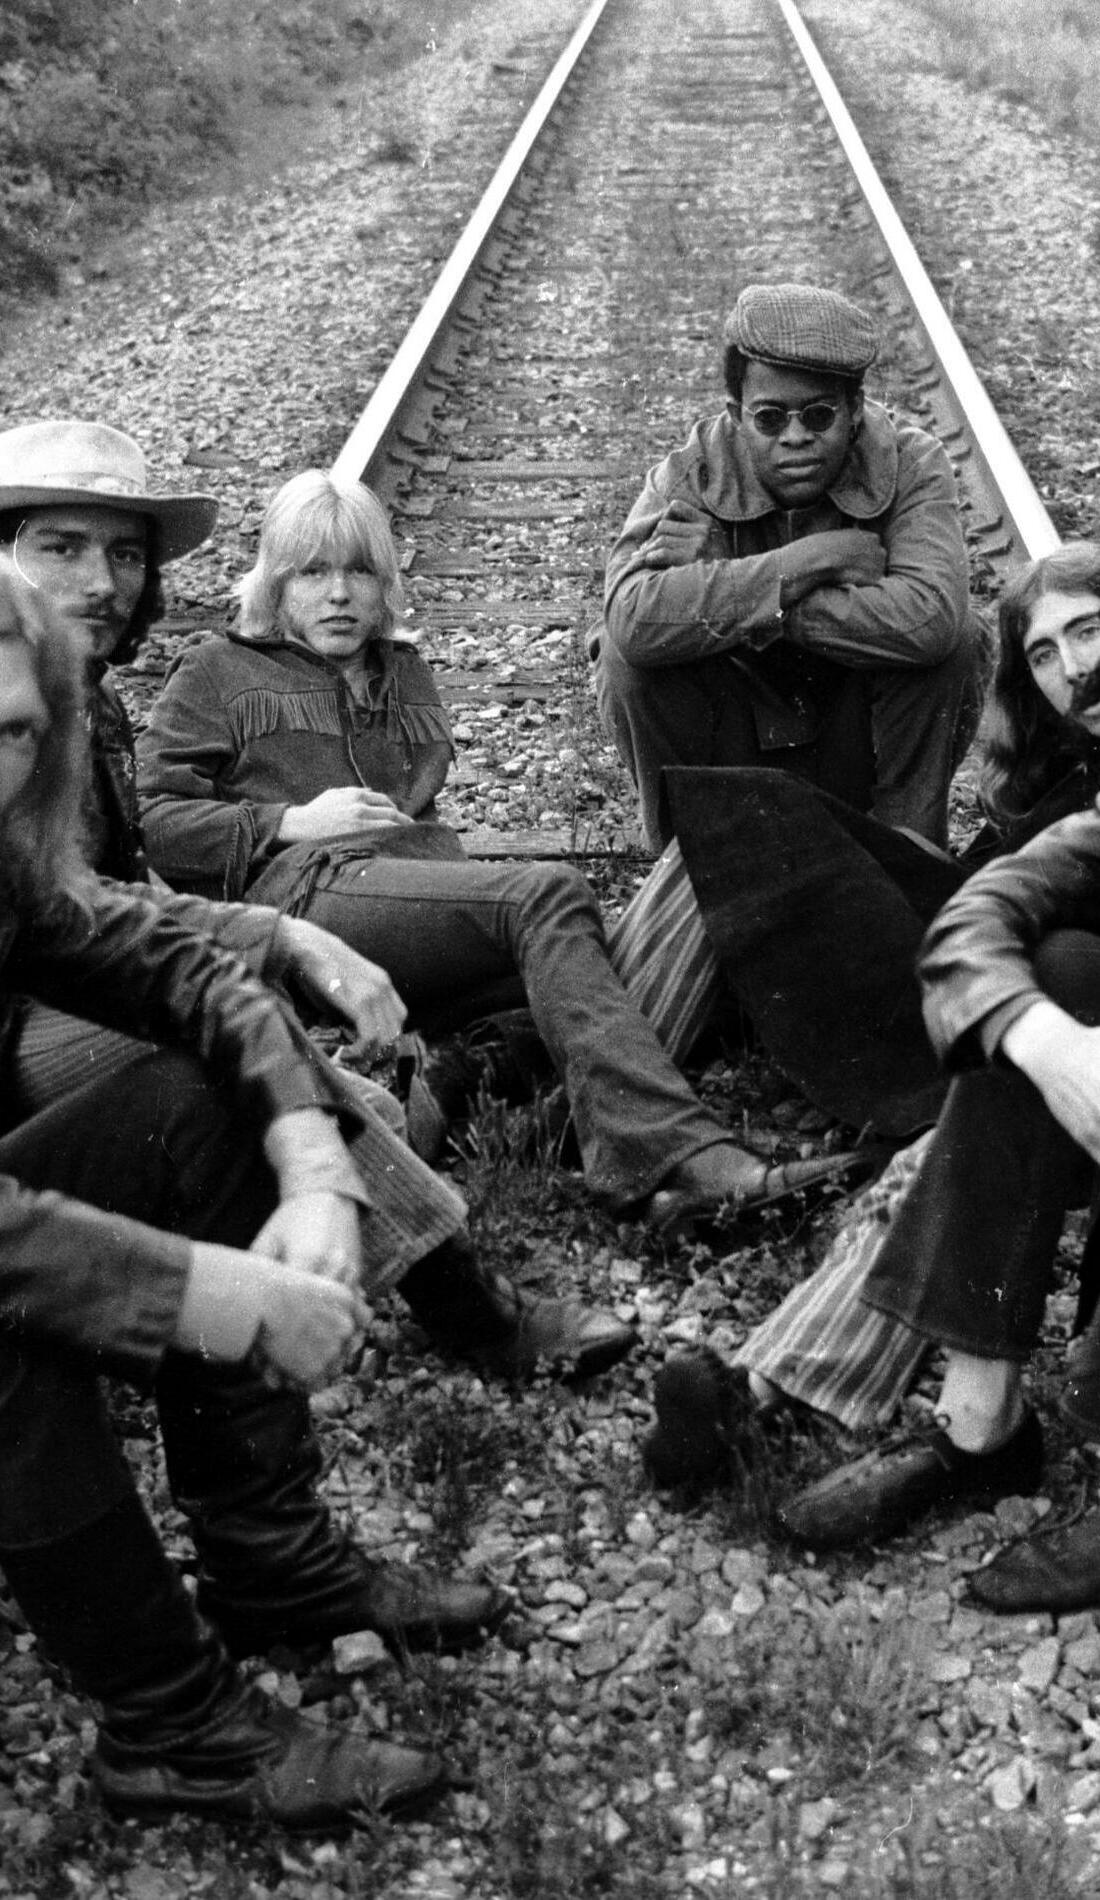 A The Allman Brothers Band live event